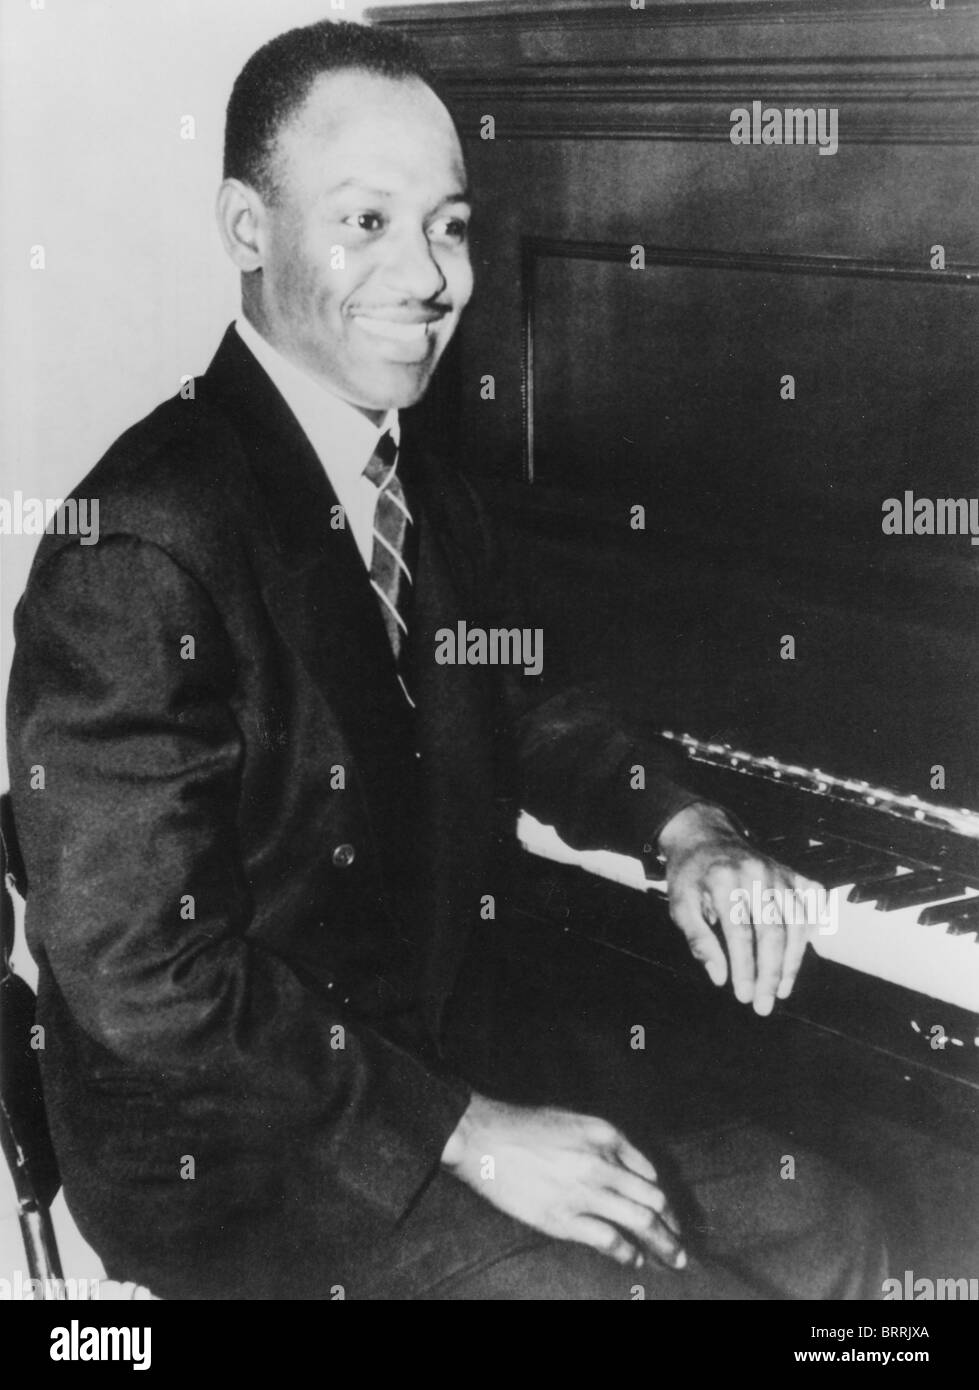 Us Blues Musician Black and White Stock Photos & Images - Alamy